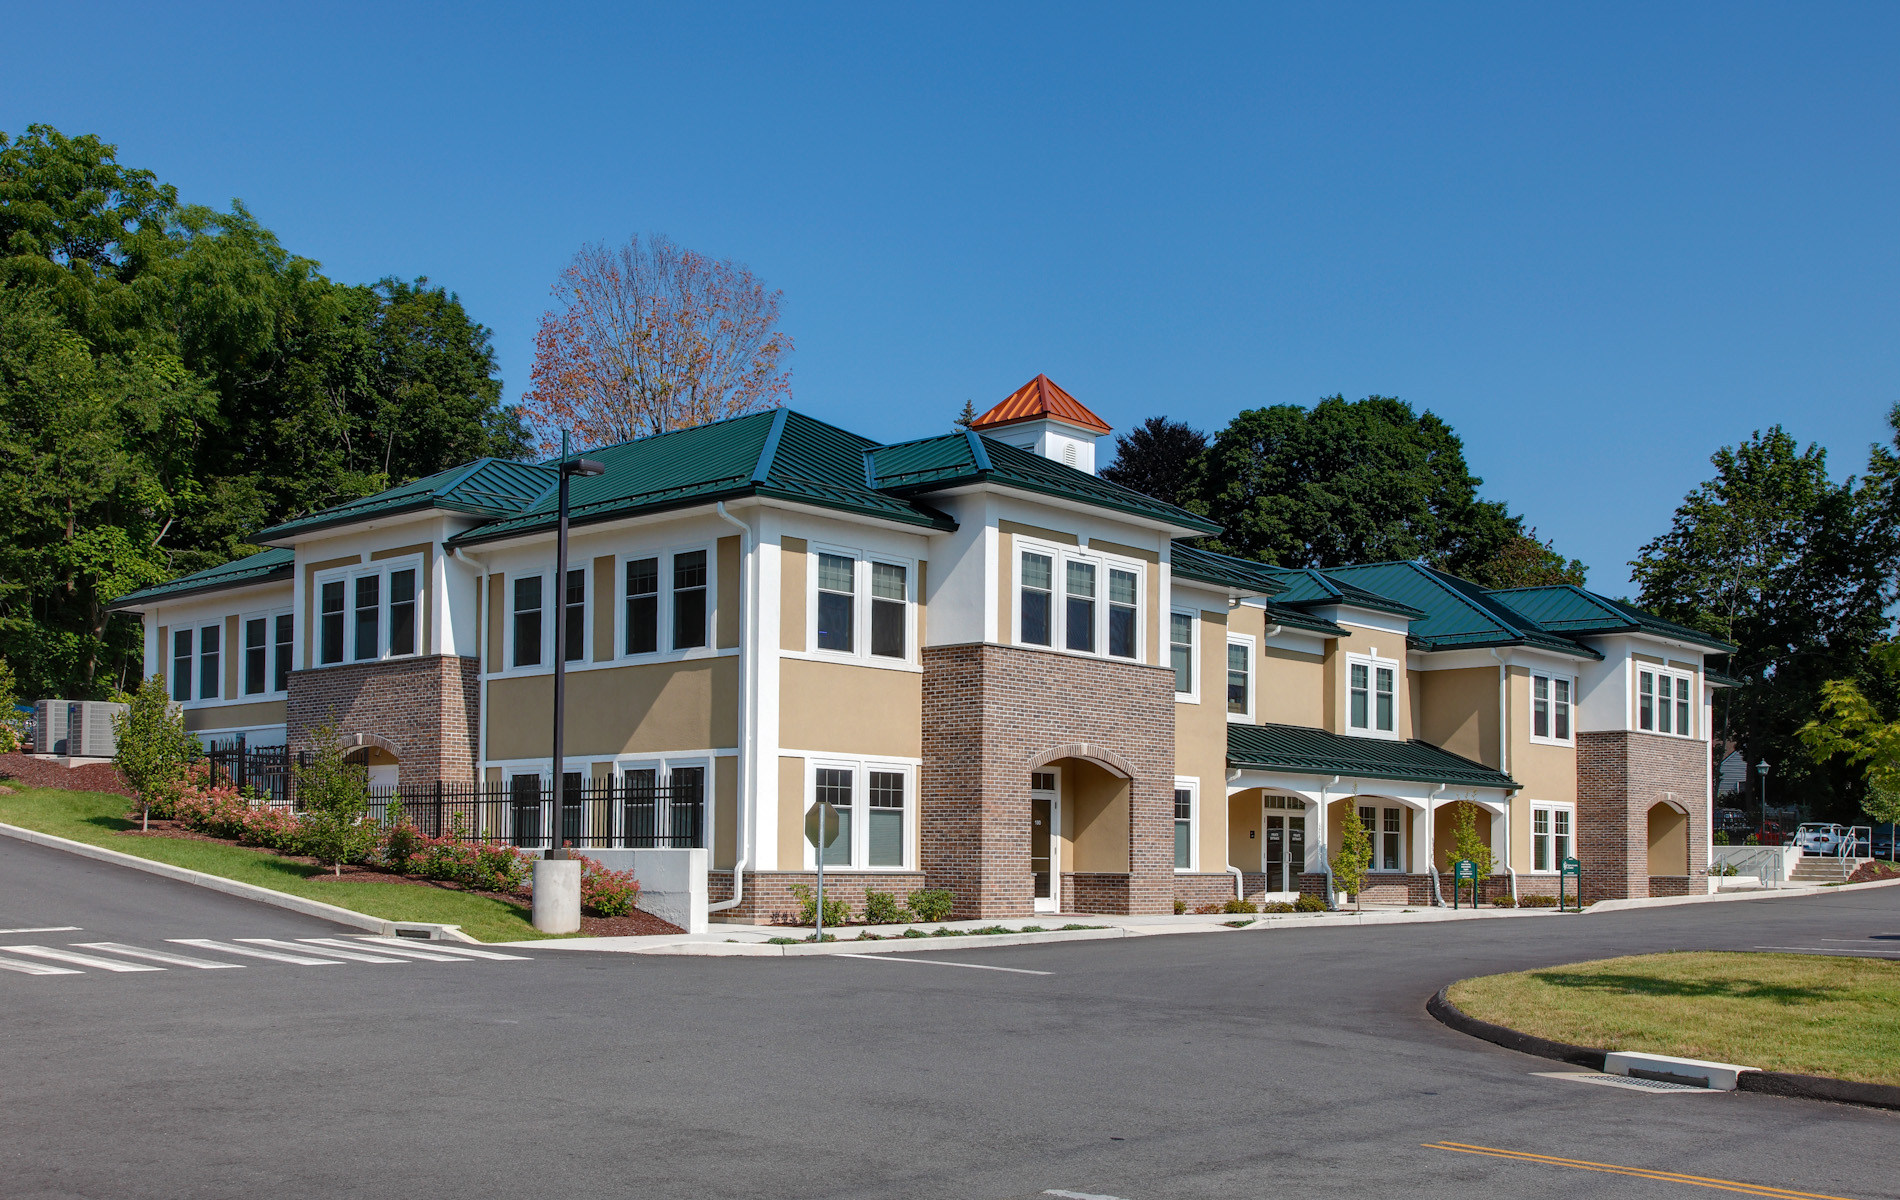 Professional medical building cheshire ct ricci for Chesire house